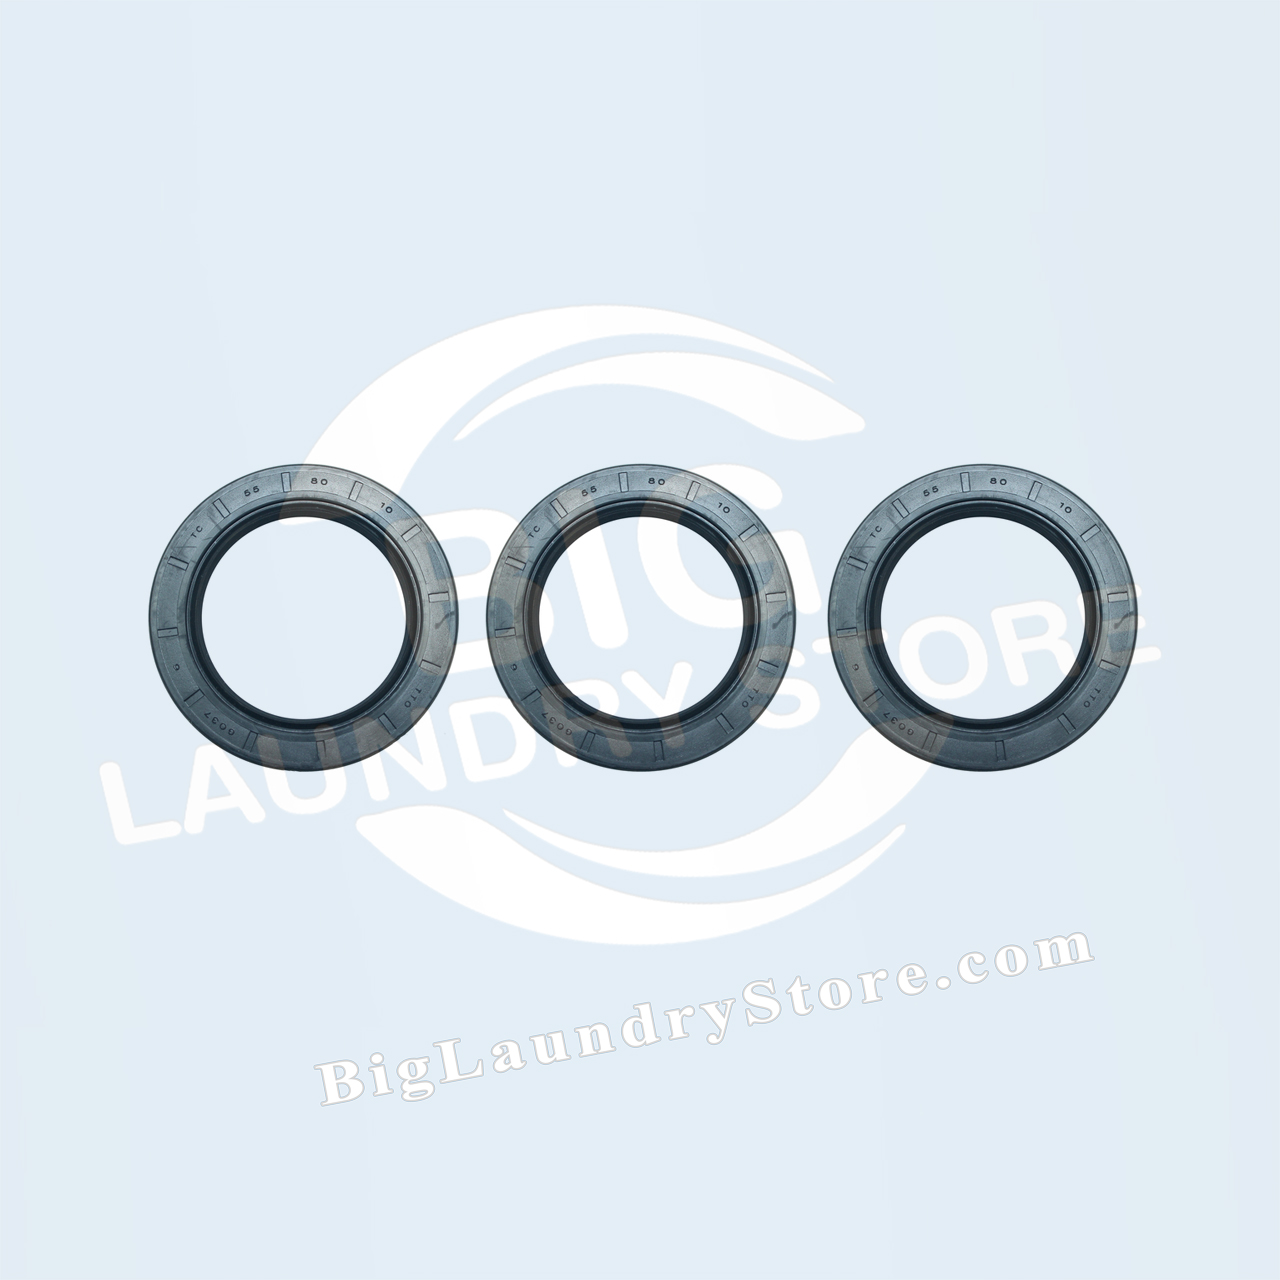 Three (3) 55-80-10 Seals for Wascomat W74 or W124 - Wascomat # 990217S, 990218S